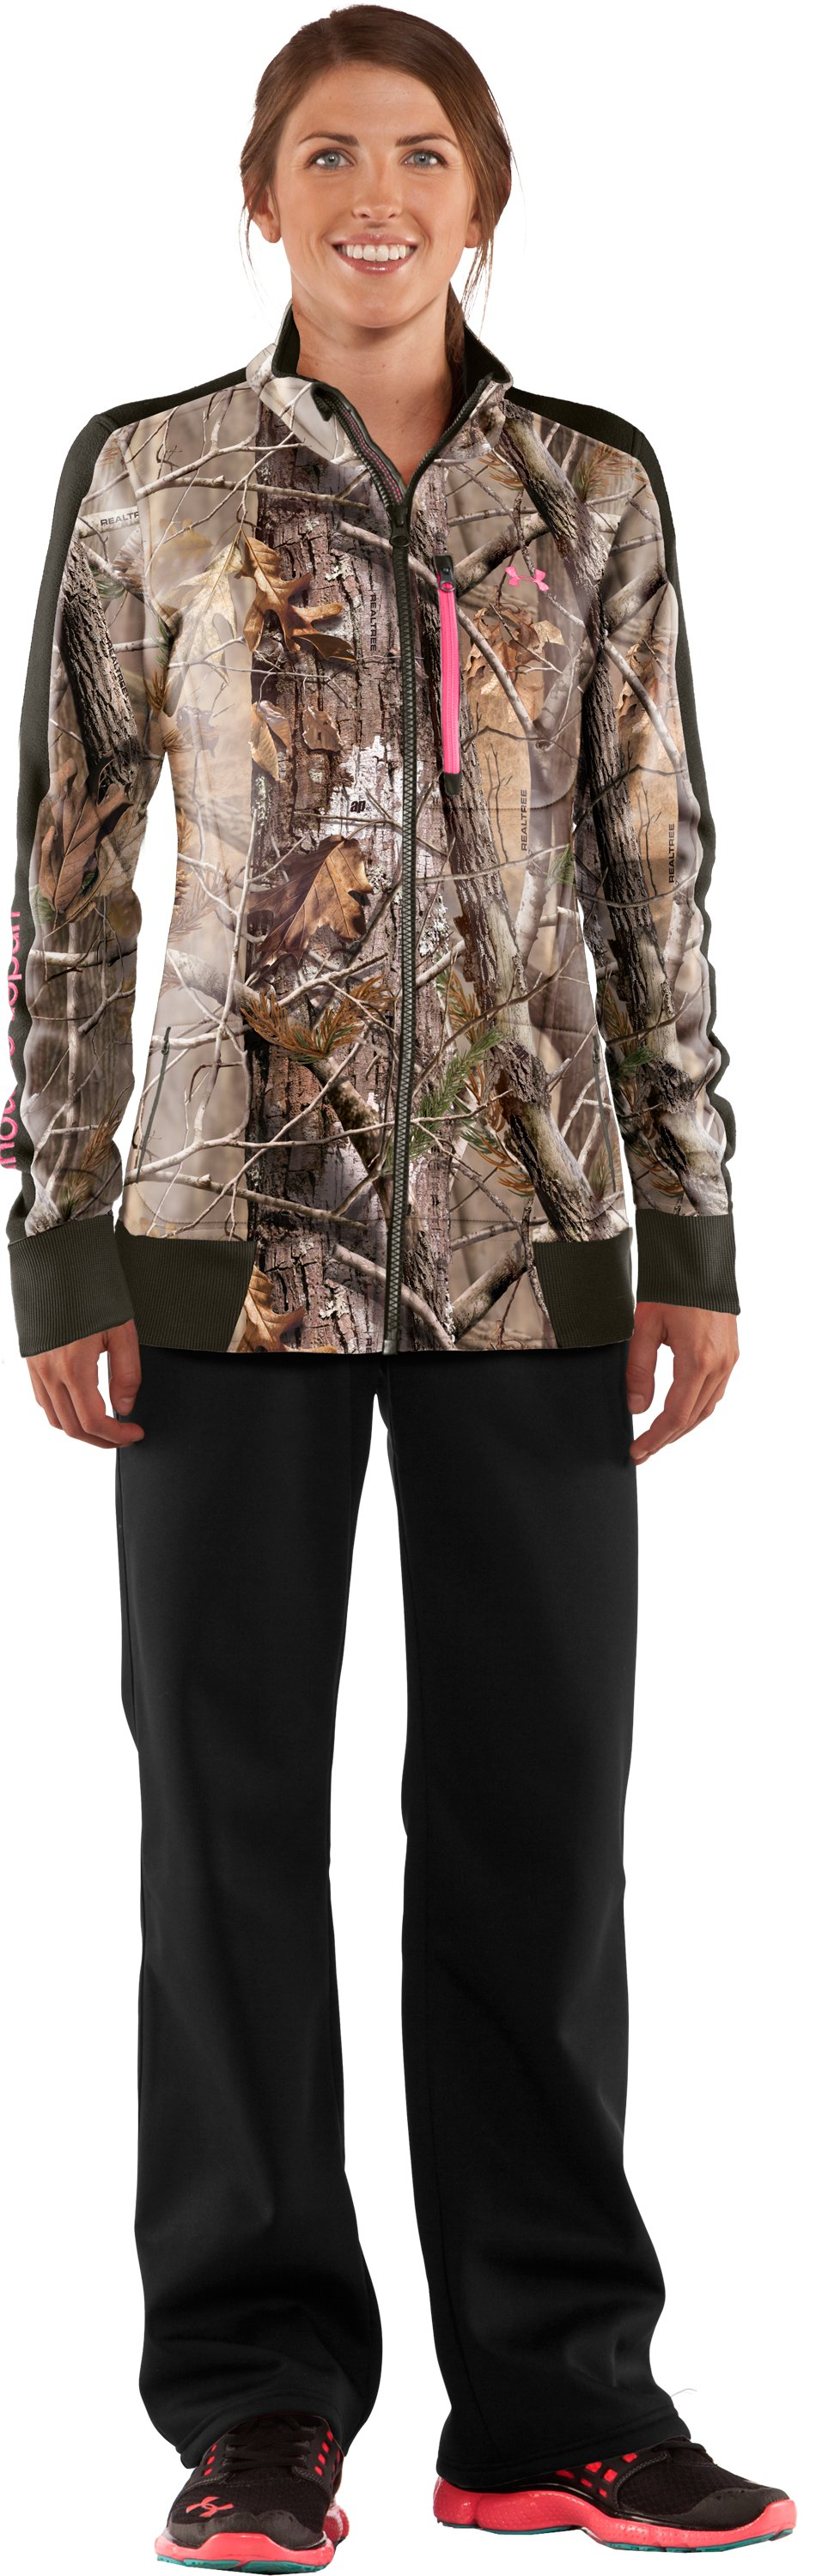 Women's Ayton Fleece Jacket, Realtree AP, Front